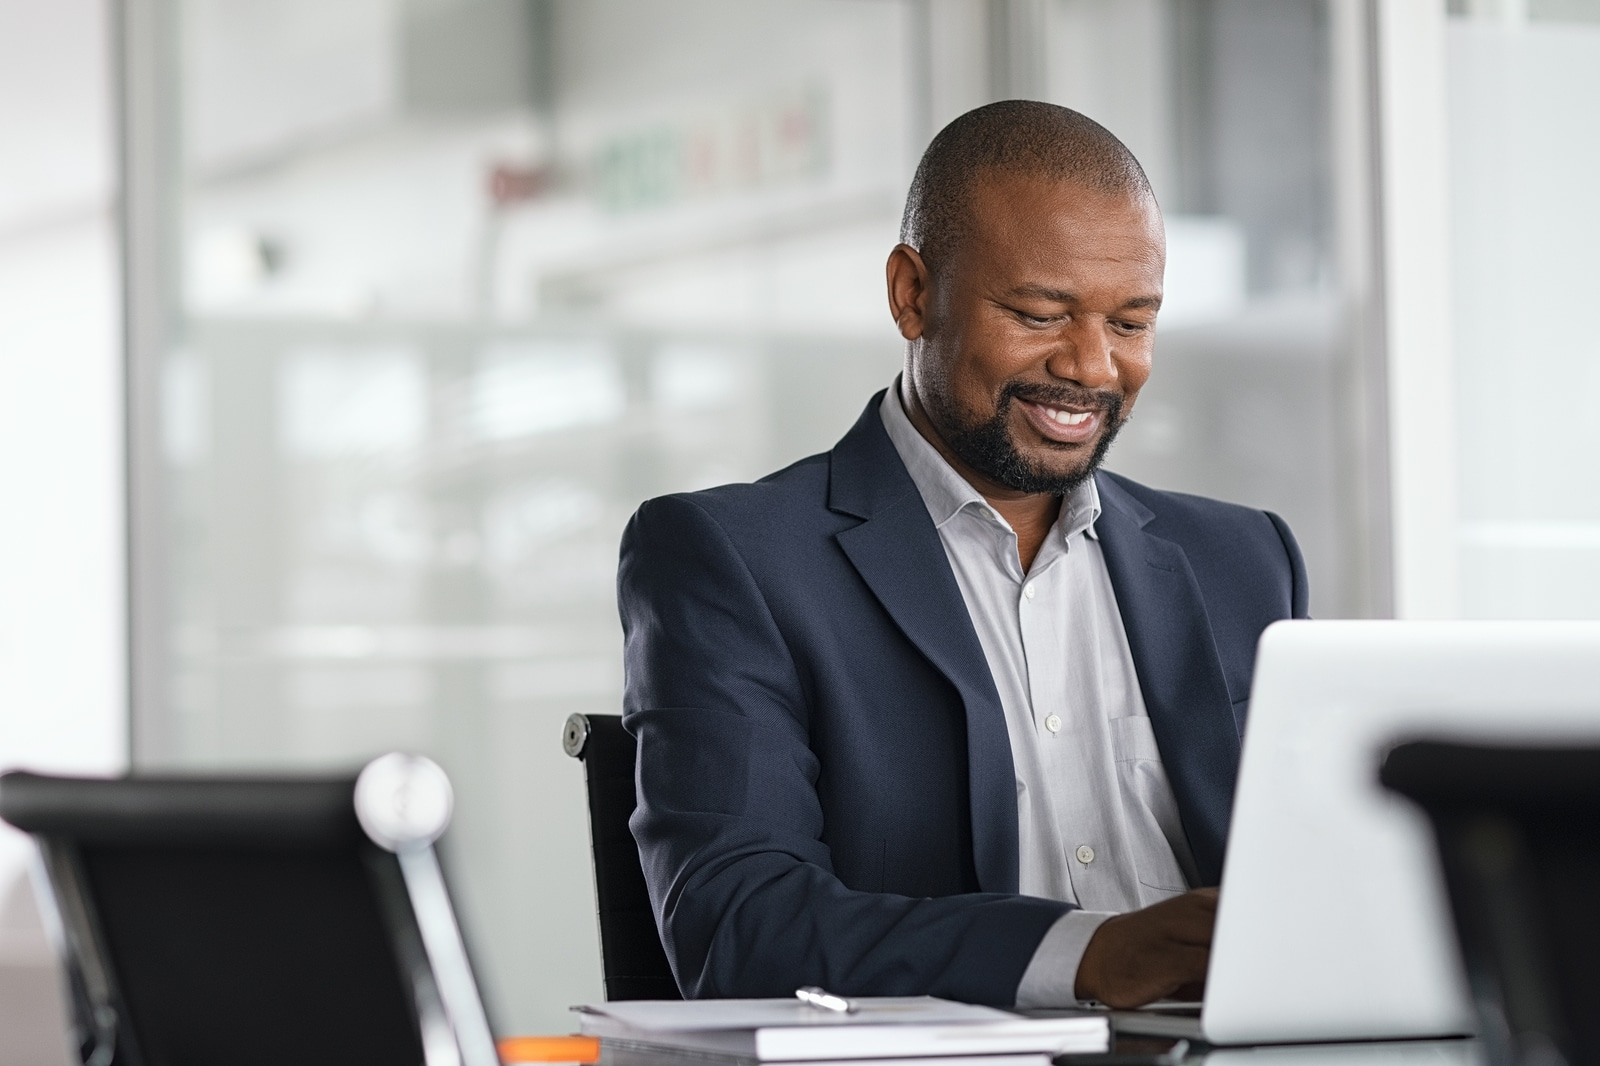 african american man smiles because he improved his readability and SEO and is ranking better on search engines. He learned these skills from Simplified SEO consulting